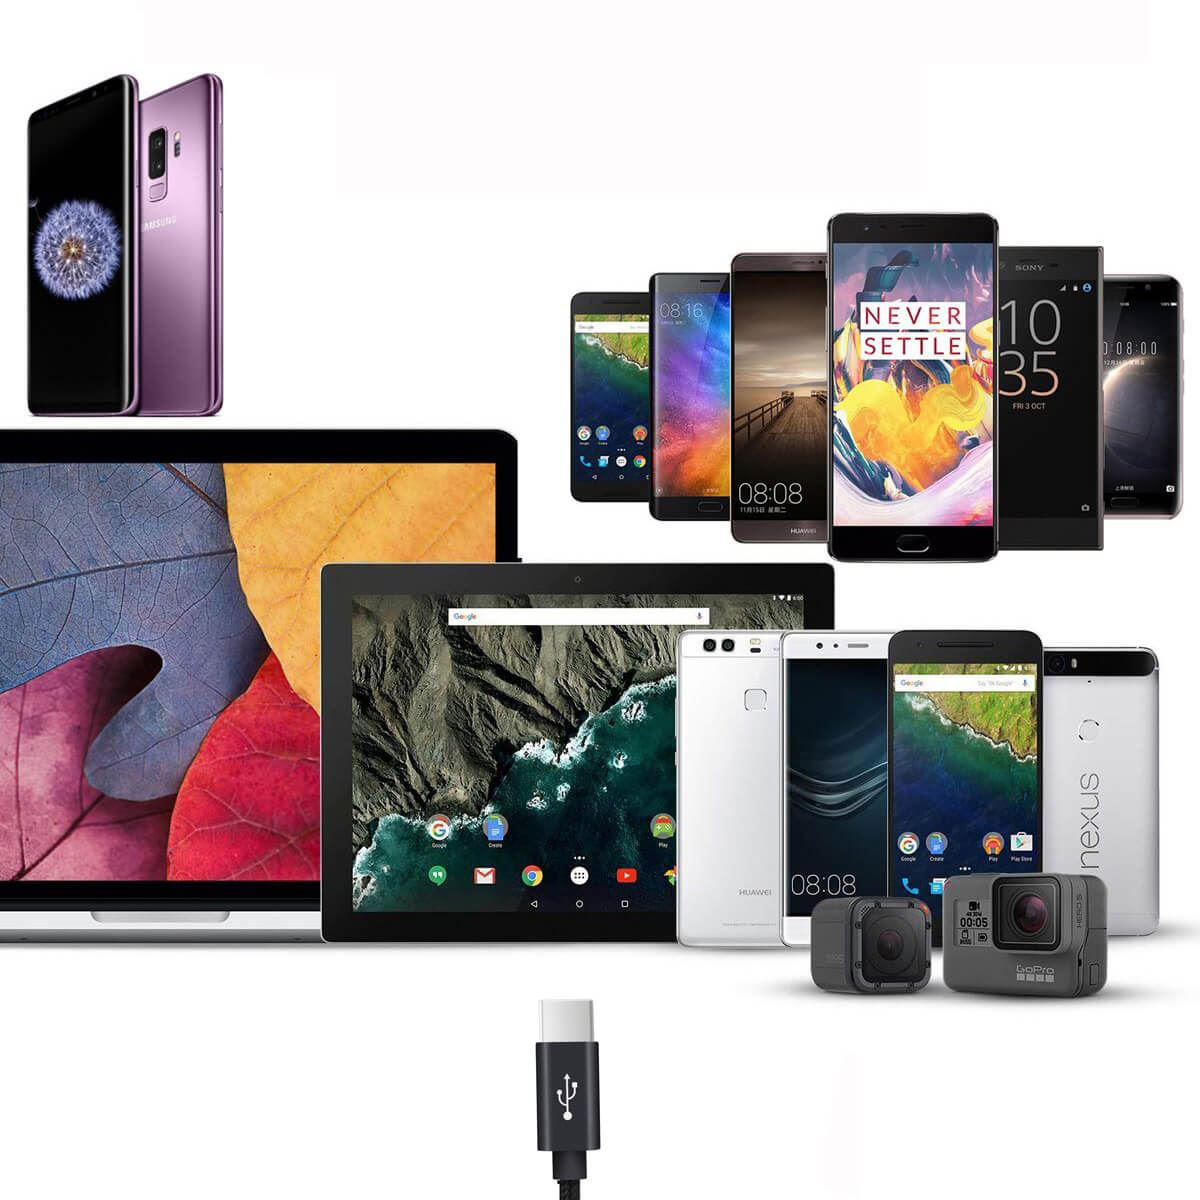 Type-C-USB-C-Sync-Fast-Charger-Charging-Cable-Samsung-Galaxy-S10-S9-S8-Plus-Lite thumbnail 4